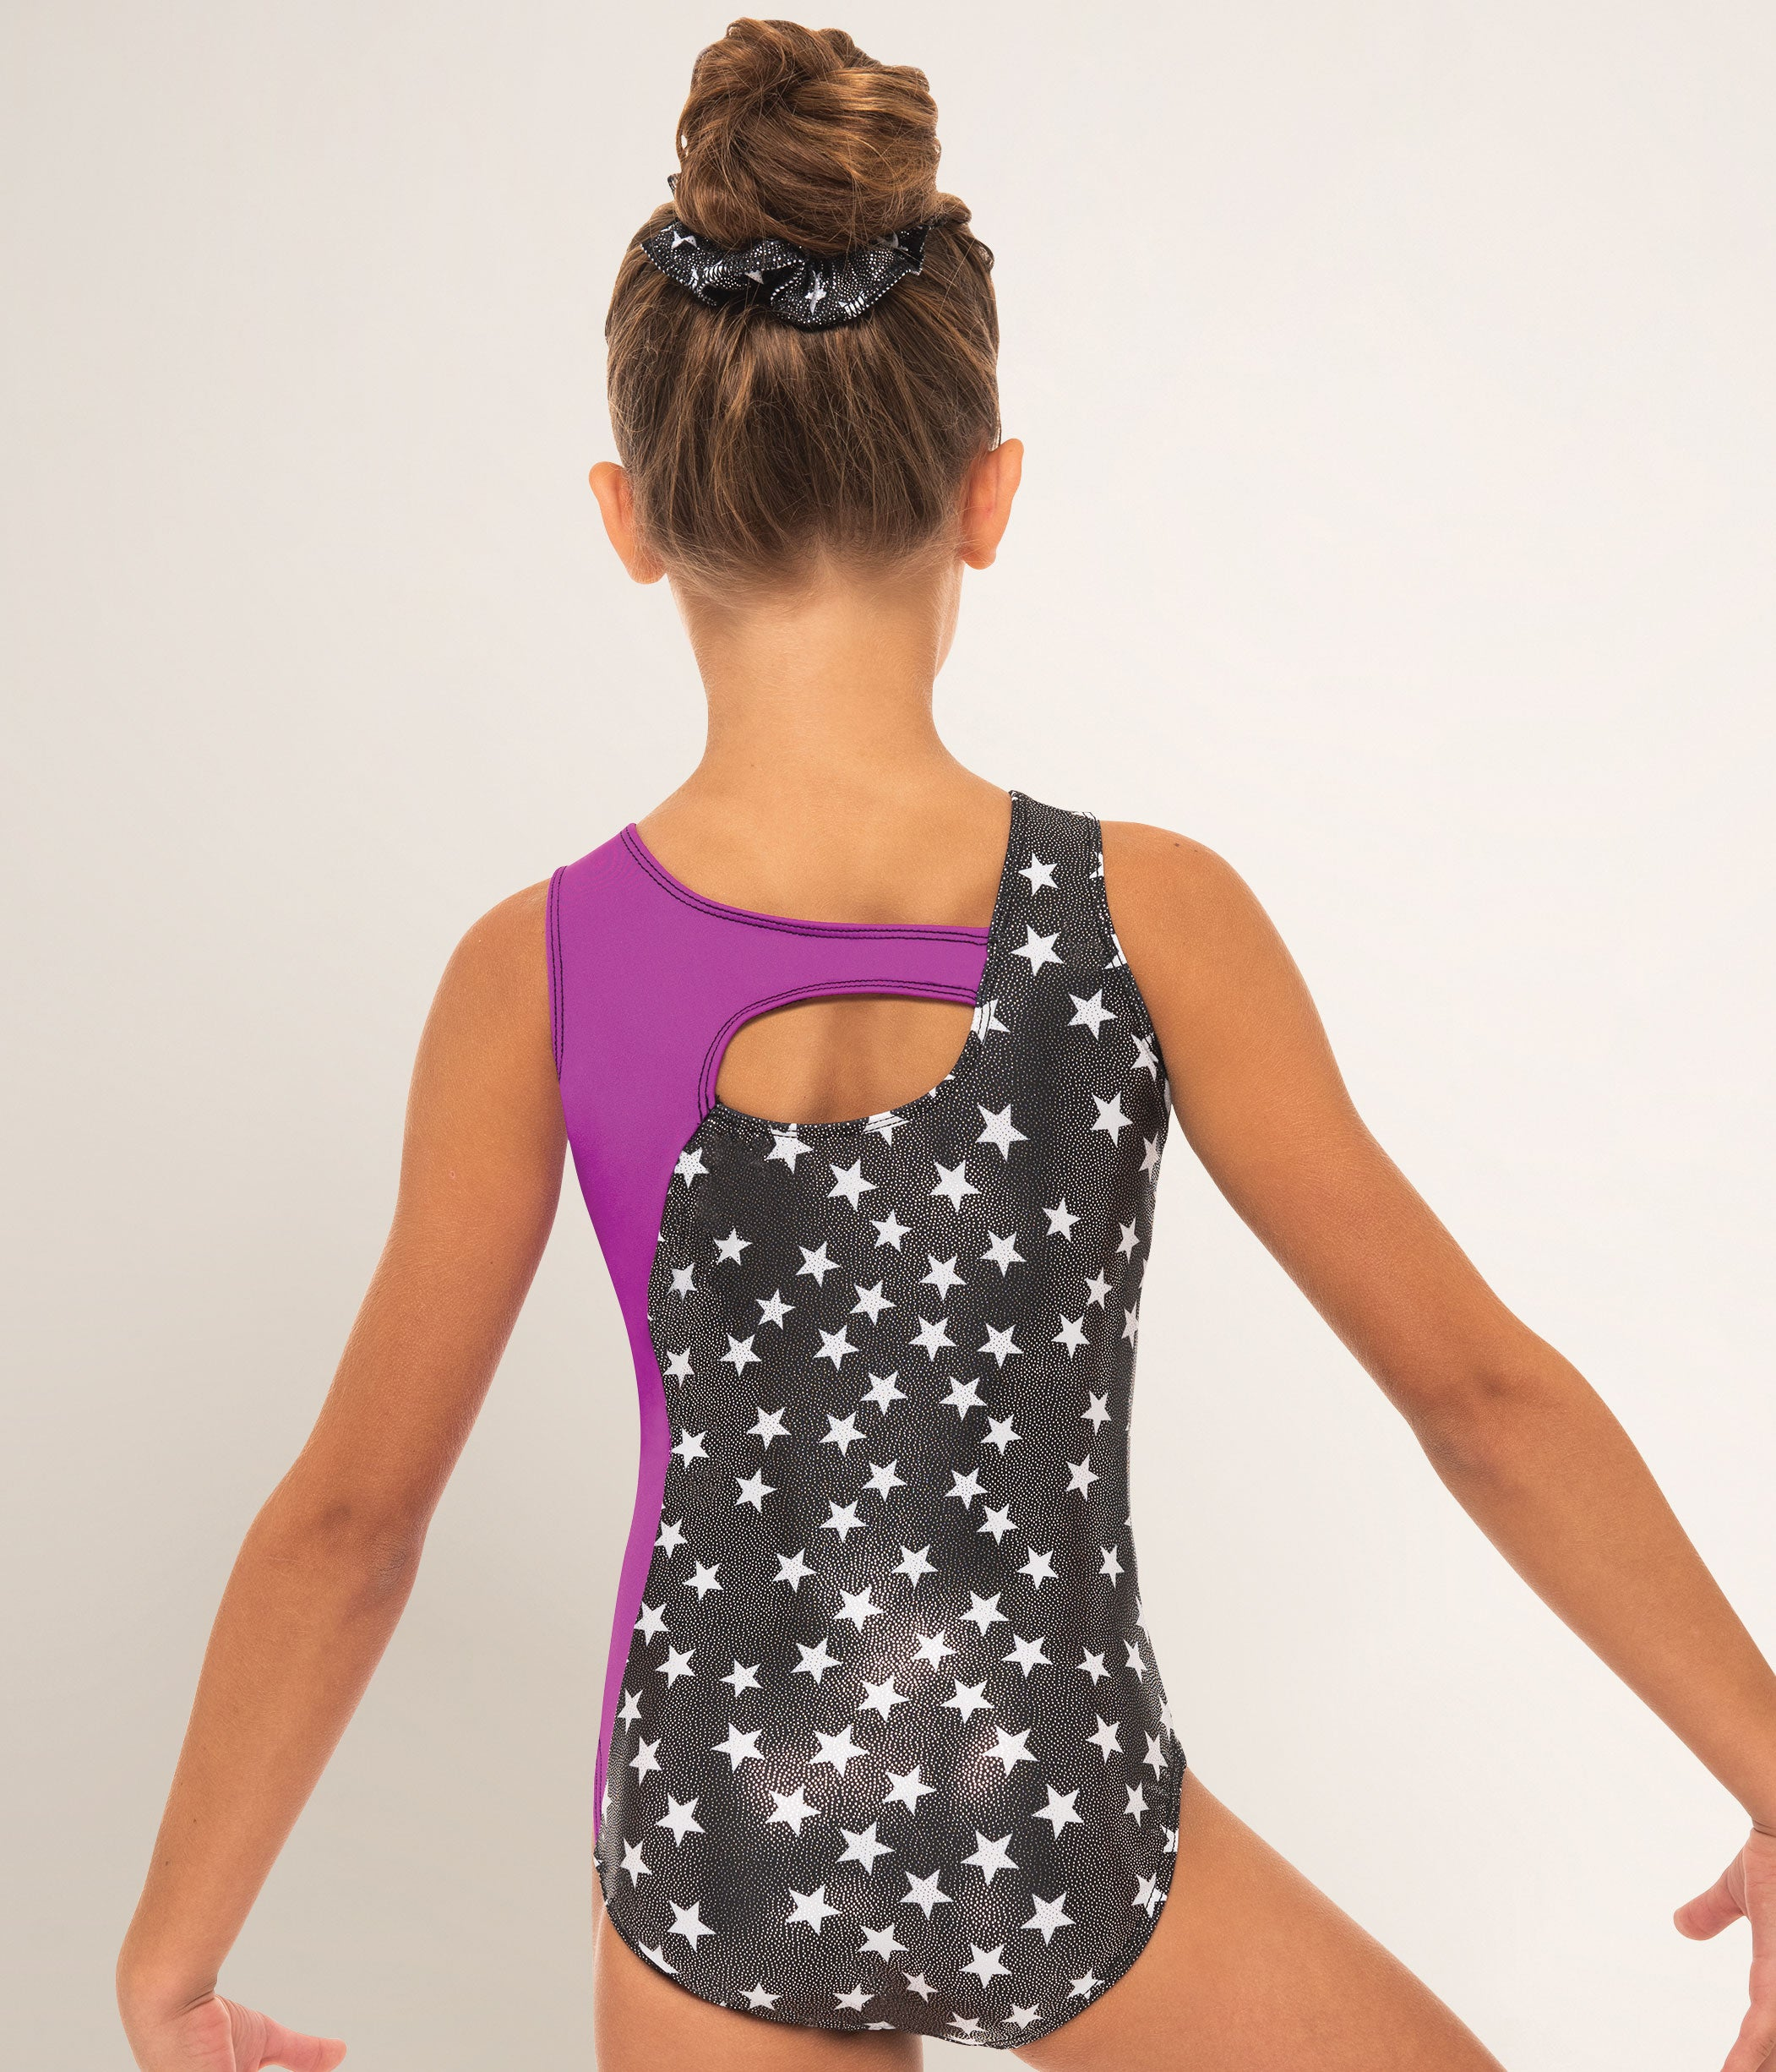 Motionwear Stellar Gymnastics Leotard - 1386